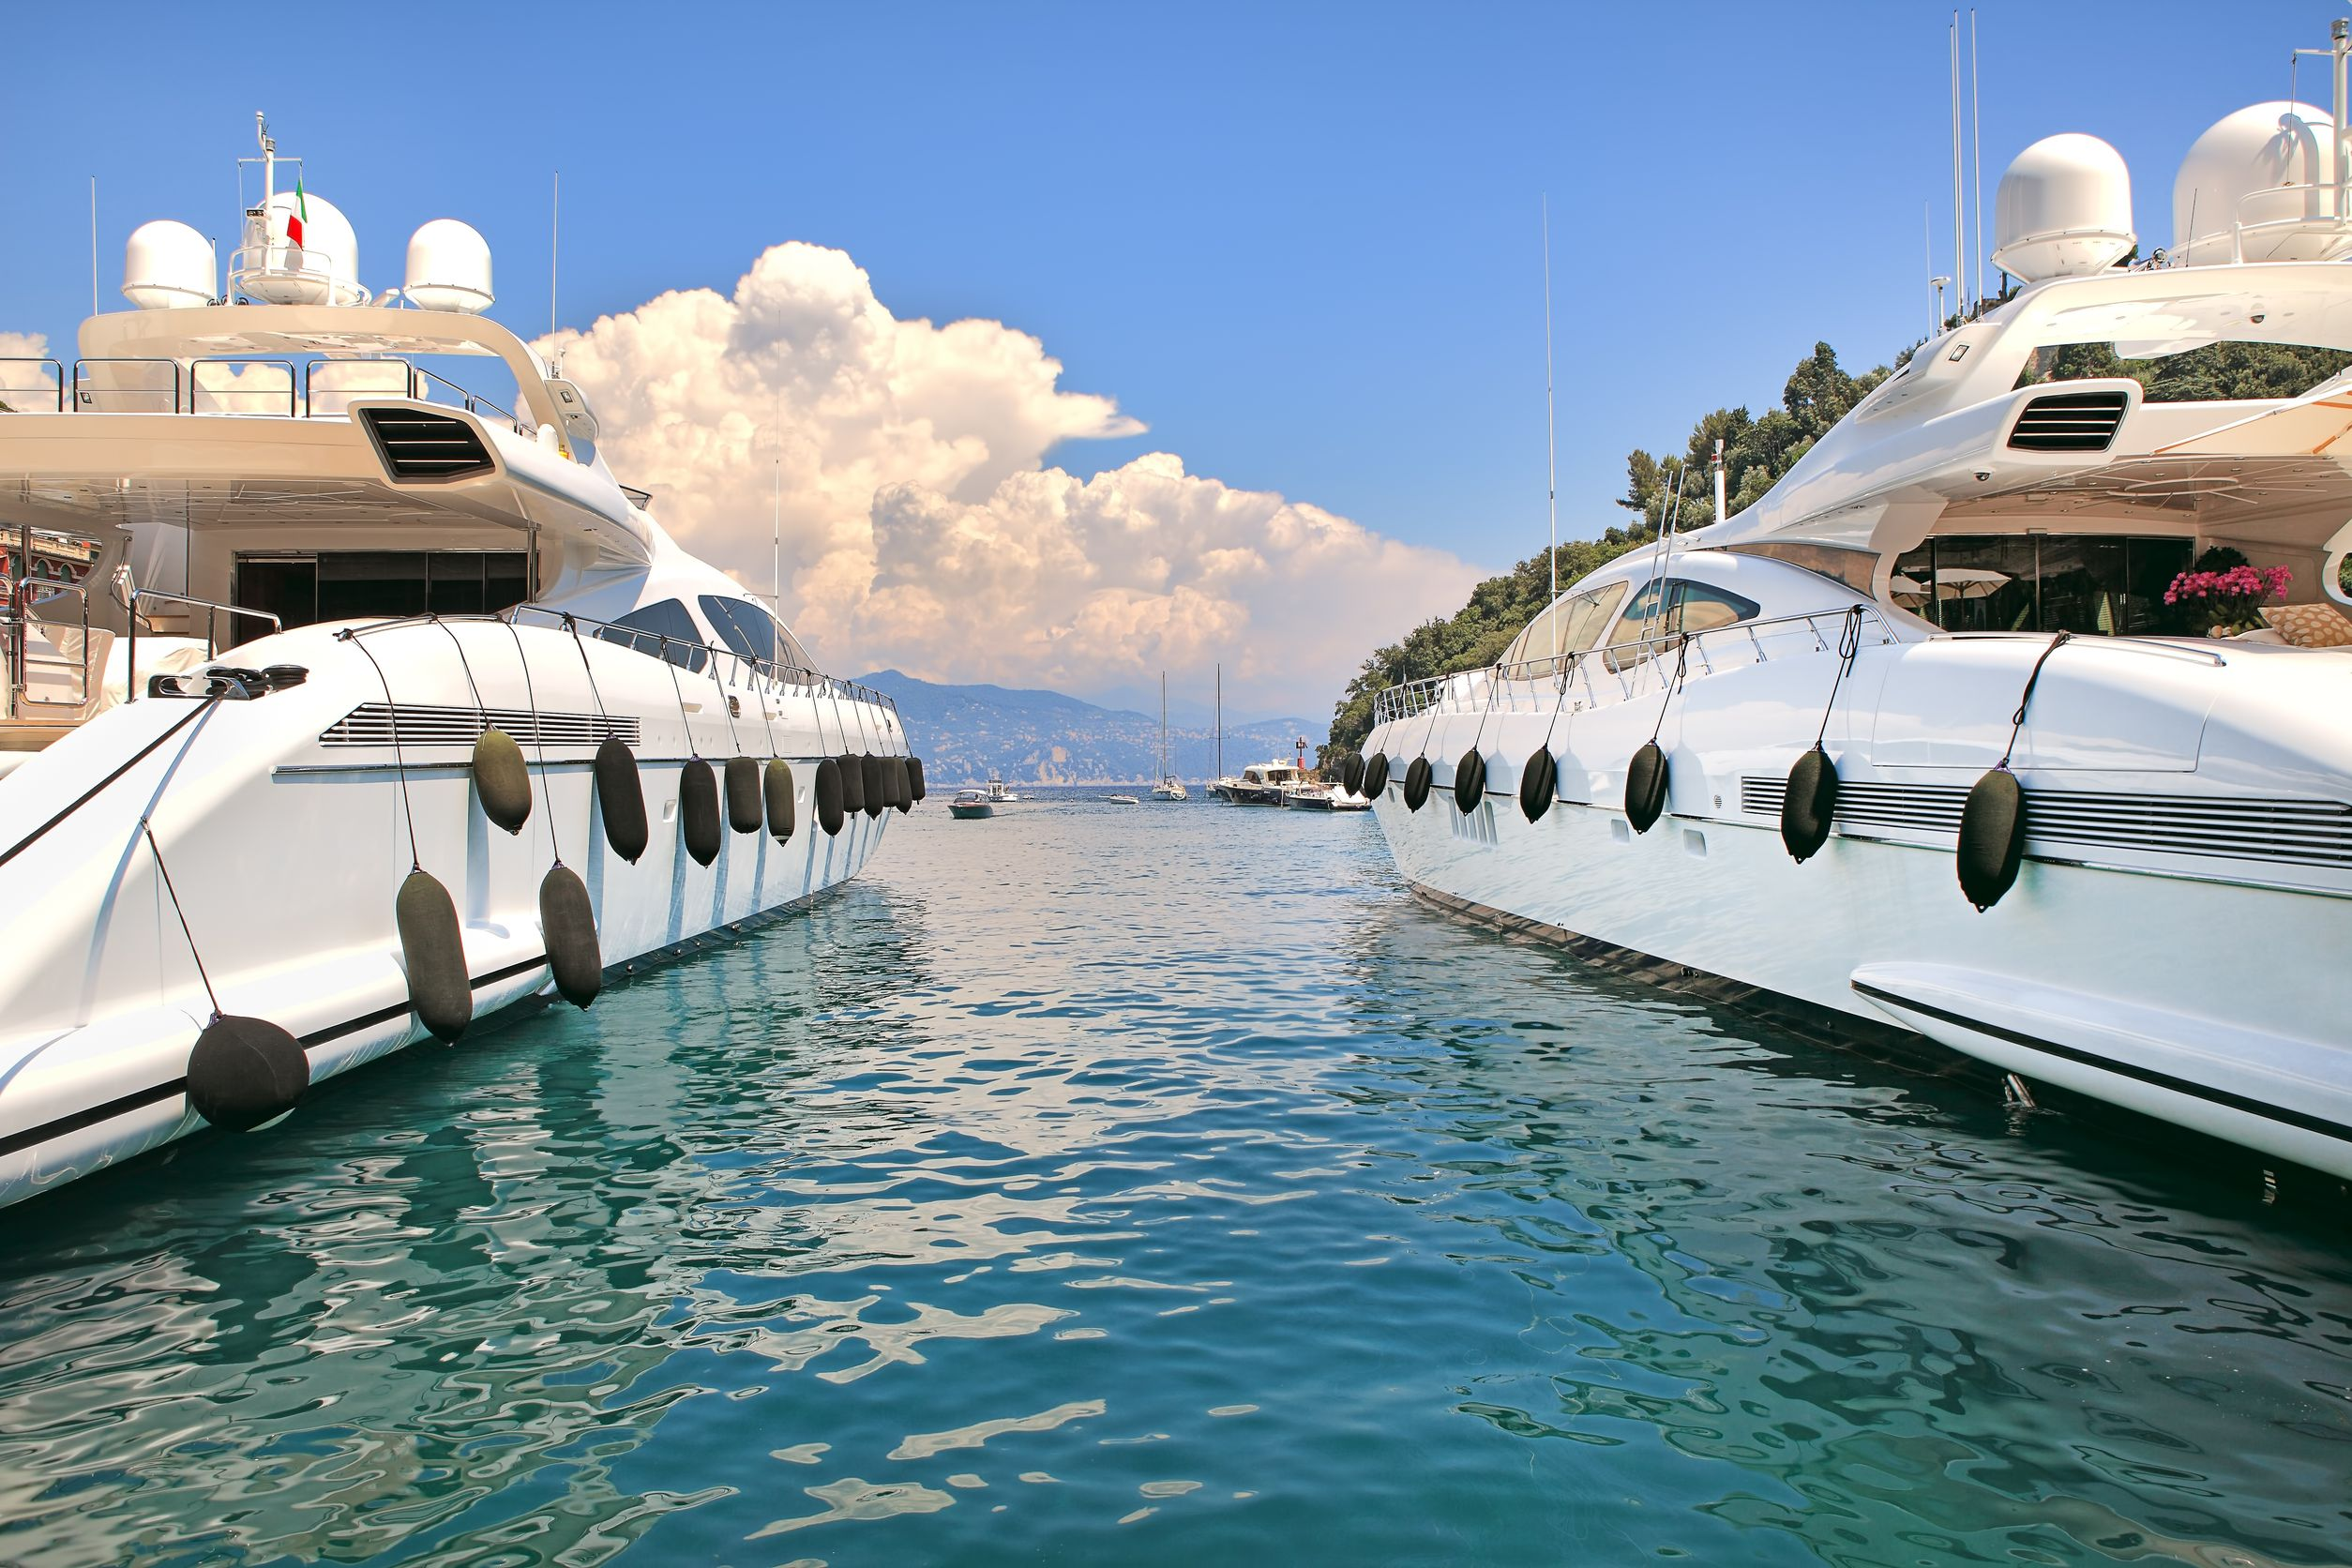 Two Boats in Cap Ferrat